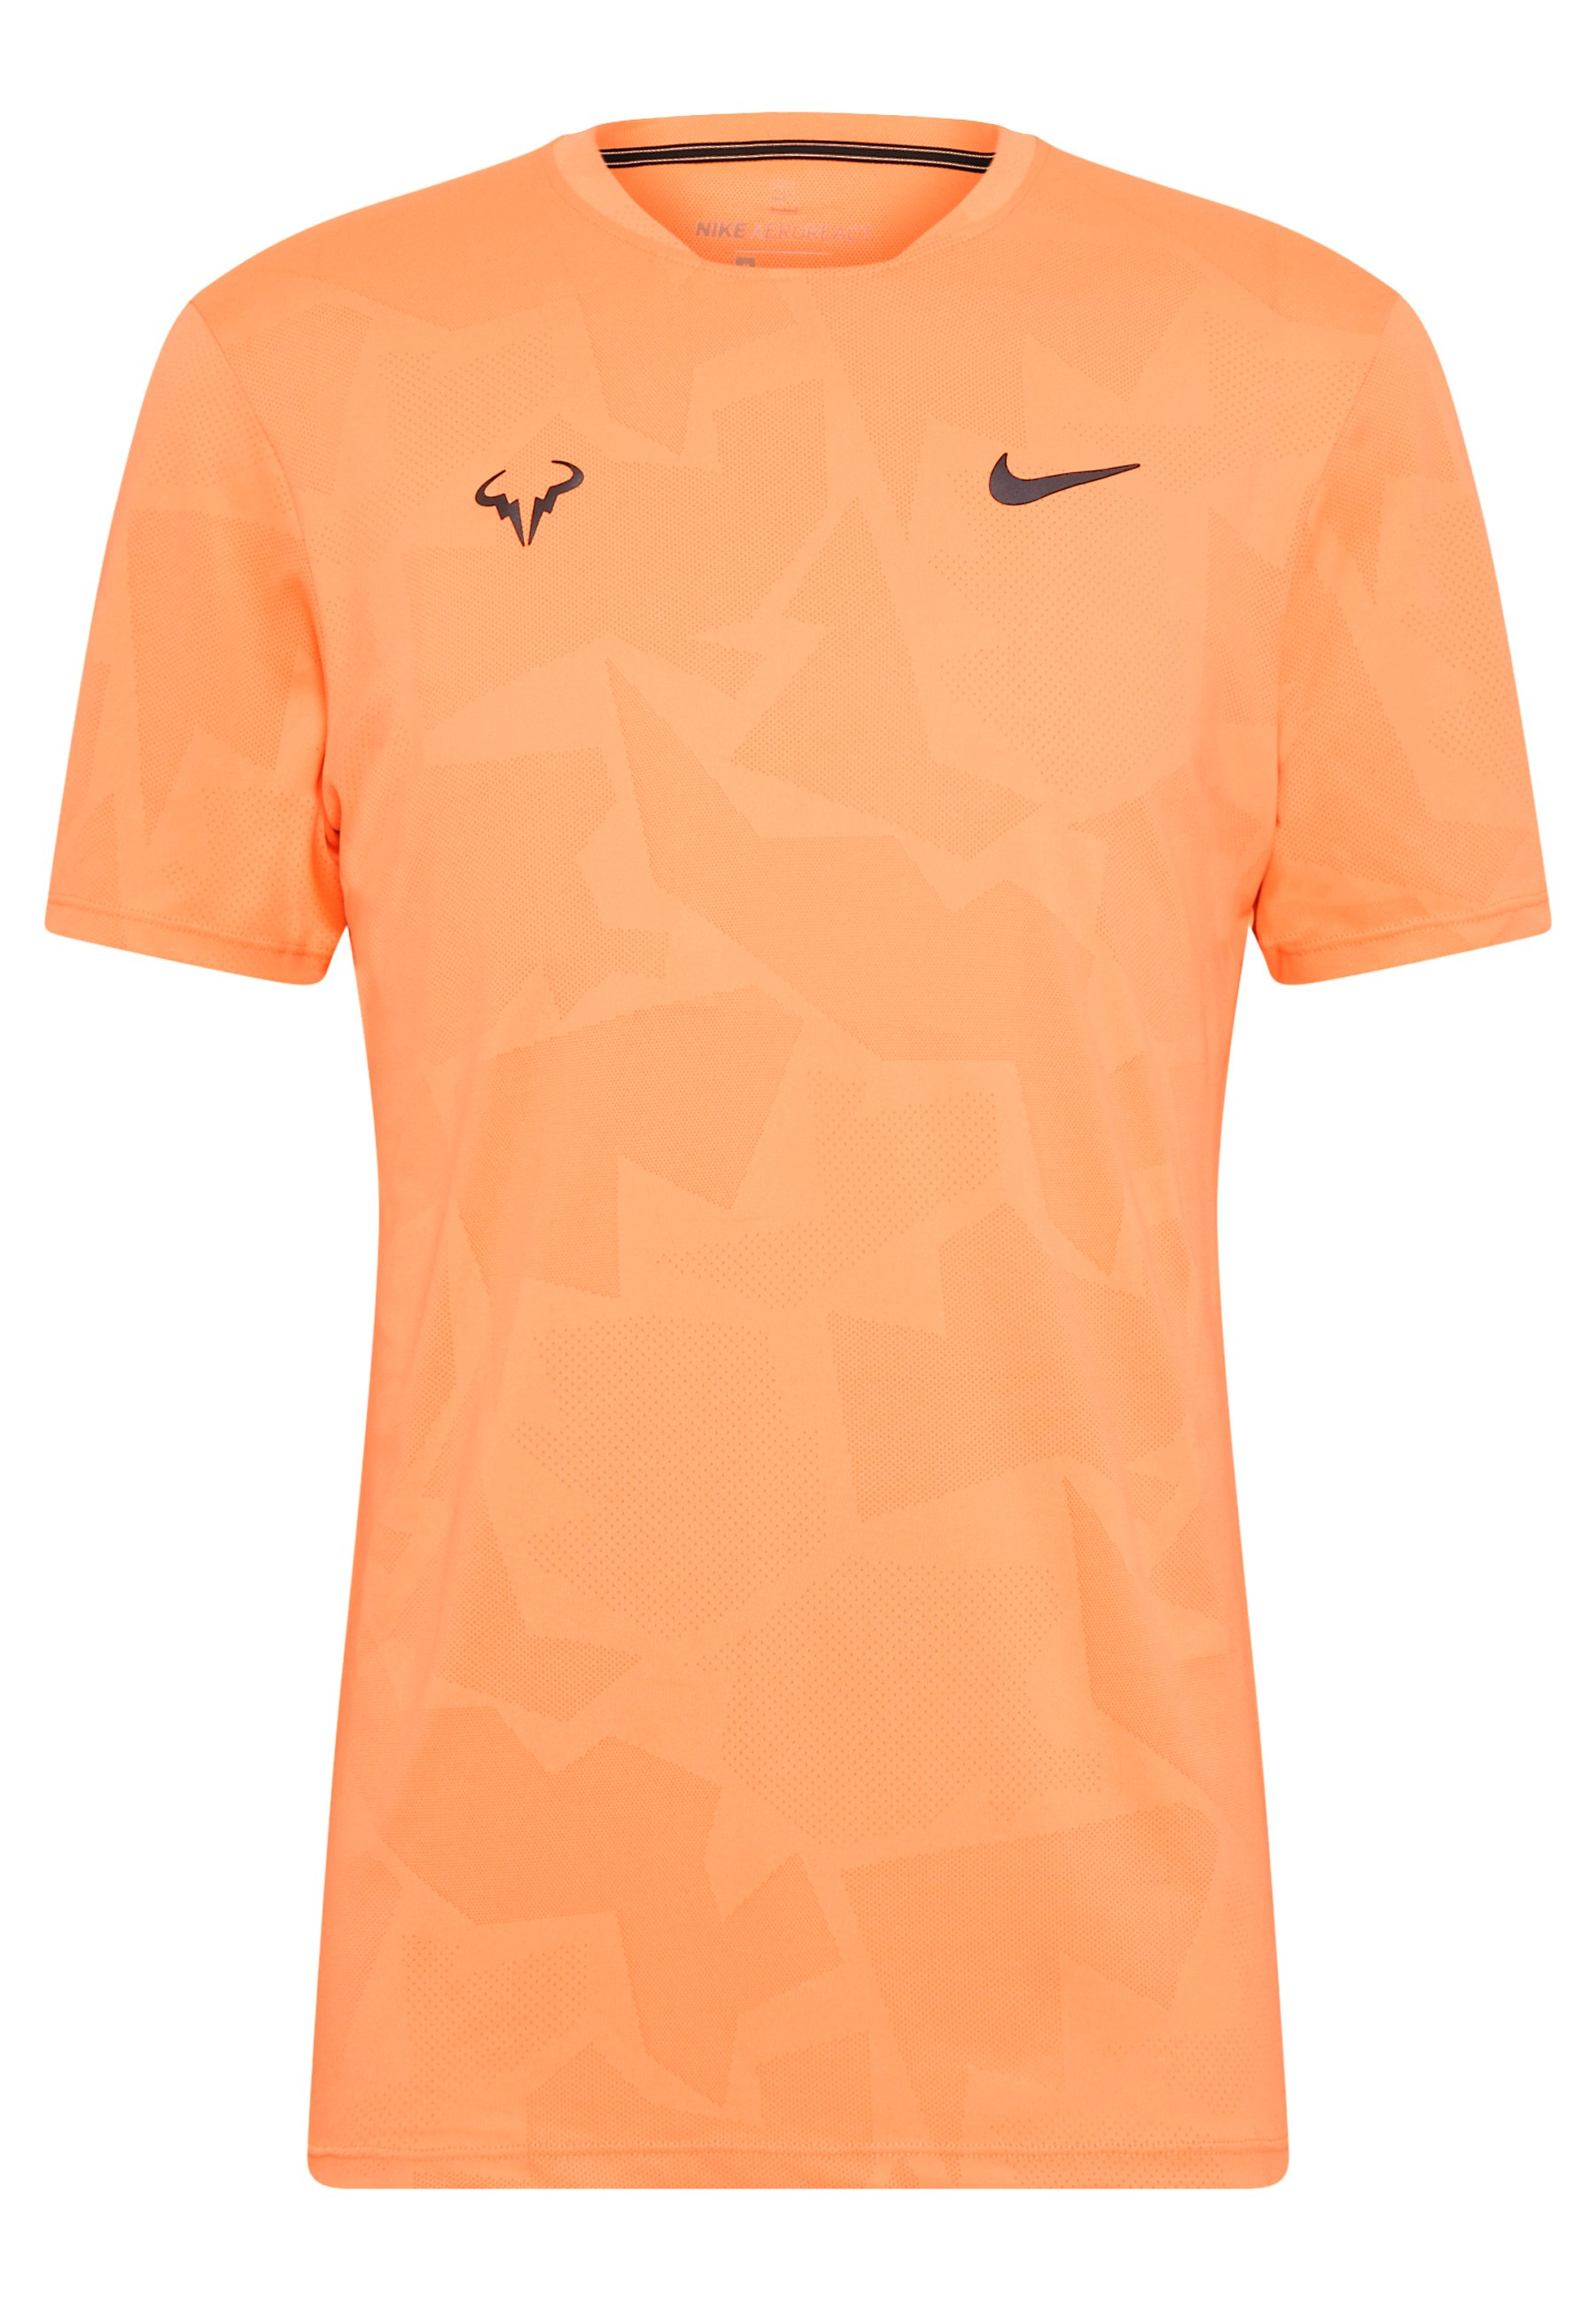 Nike Performance RAFAEL NADAL T shirt print orange pulse